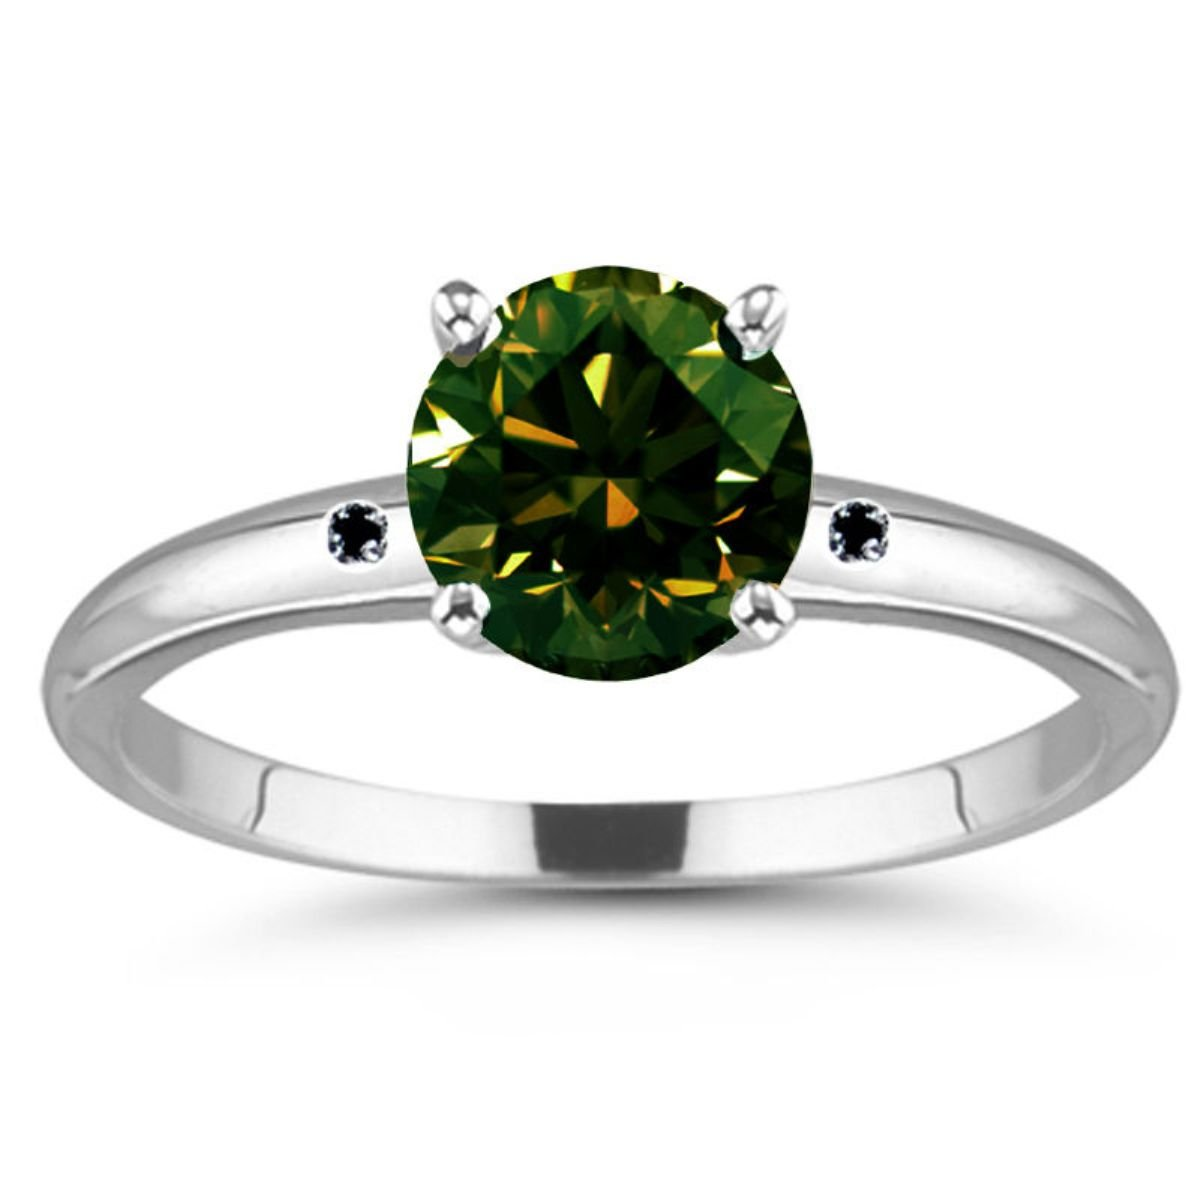 RINGJEWEL 4.20 ct VS1 Round Real Moissanite Solitaire Silver Plated Engagement Ring Green Color Size 7